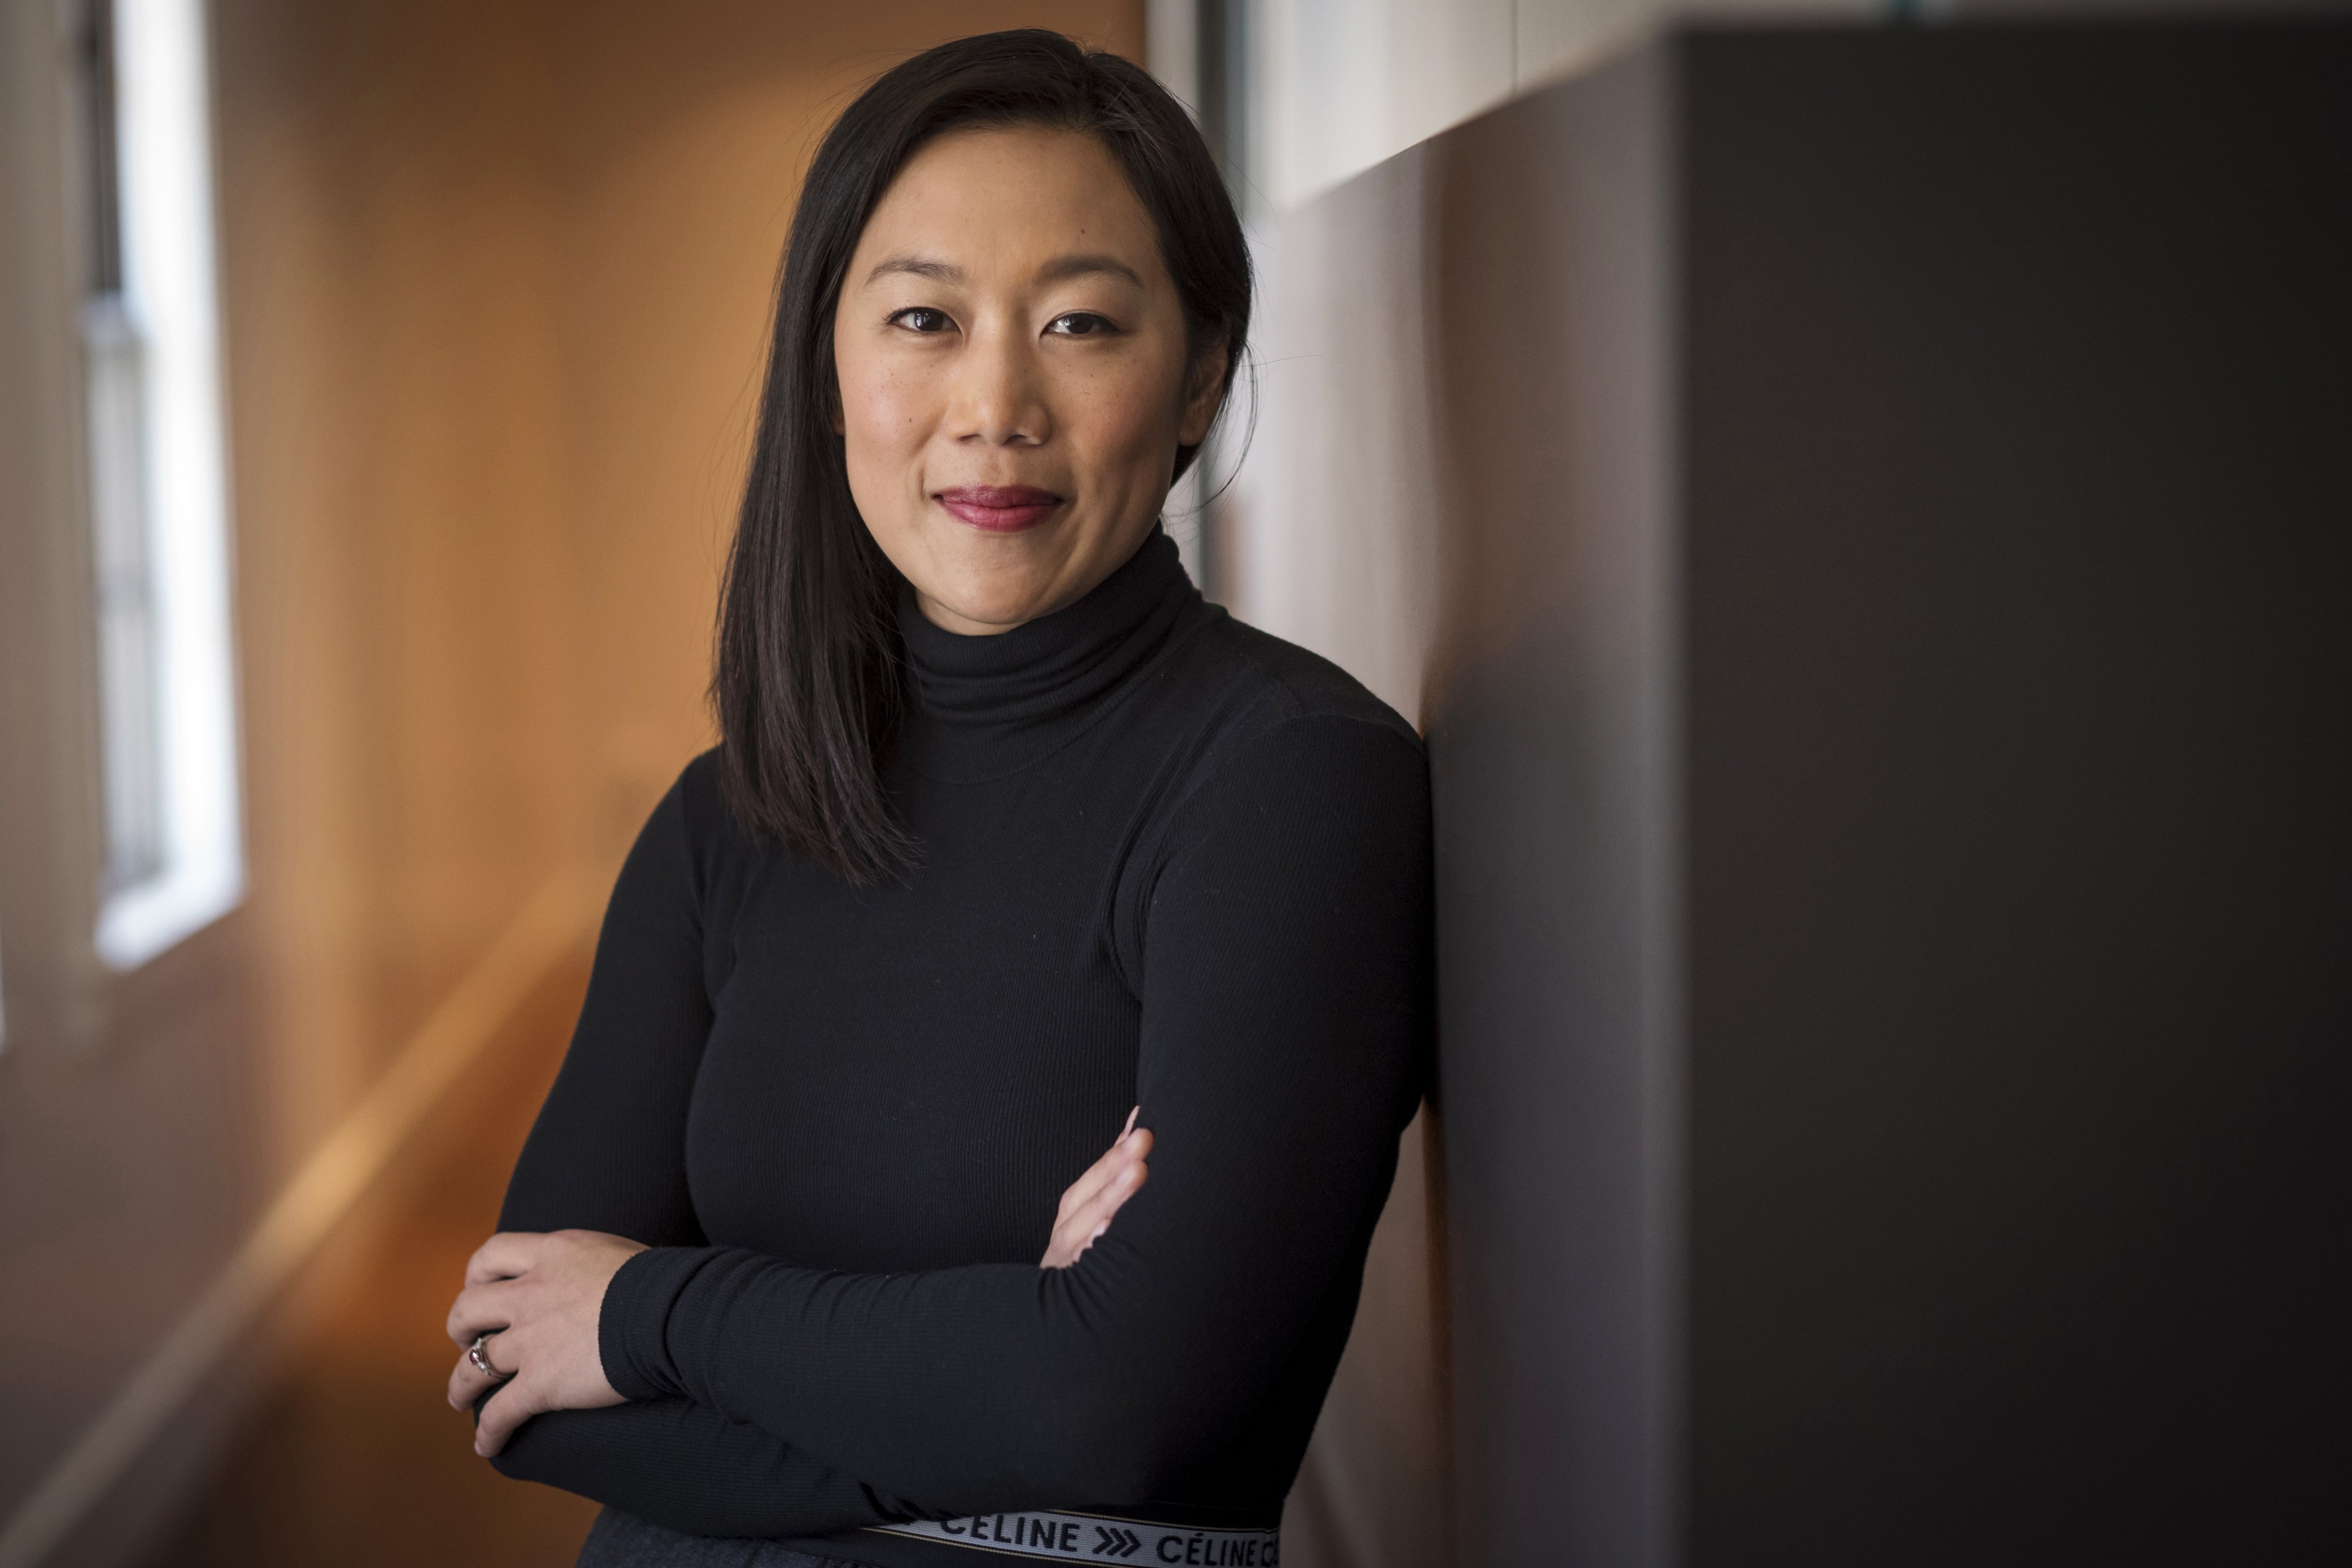 Priscilla Chan after a Bloomberg Technology television interview in San Francisco, California, U.S., on Thursday, Jan. 24, 2019 | Photo: GettyImages